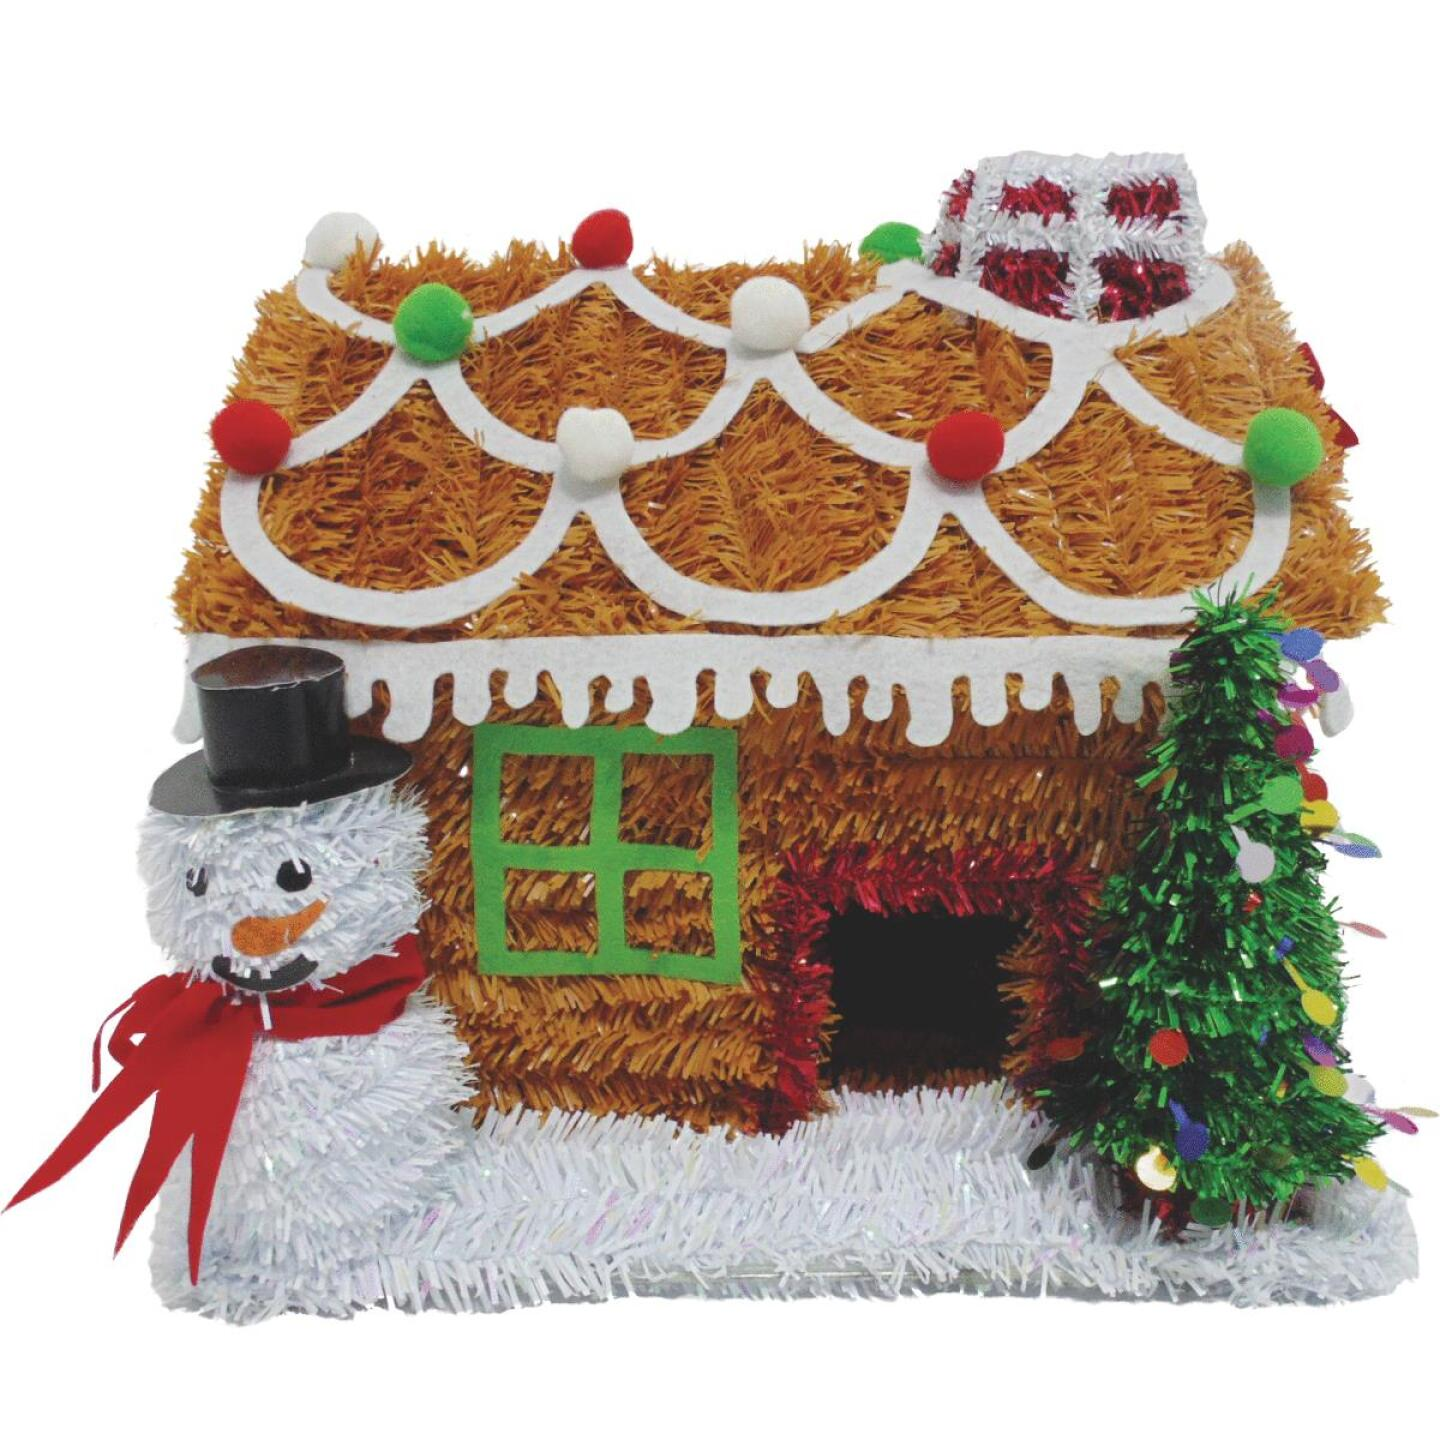 Youngcraft 9 In. Tinsel Tabletop Gingerbread House Holiday Decoration Image 1